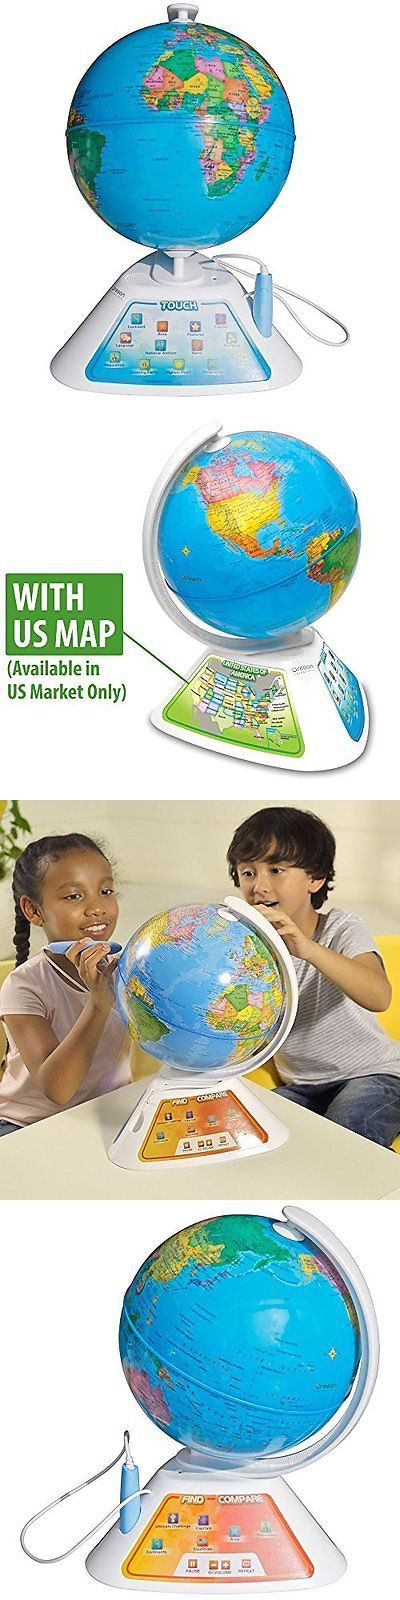 Geography and History 11733: Smart Globe Interactive Discover Earth Globe With Smart Pen Learn Explore -> BUY IT NOW ONLY: $55.84 on eBay!